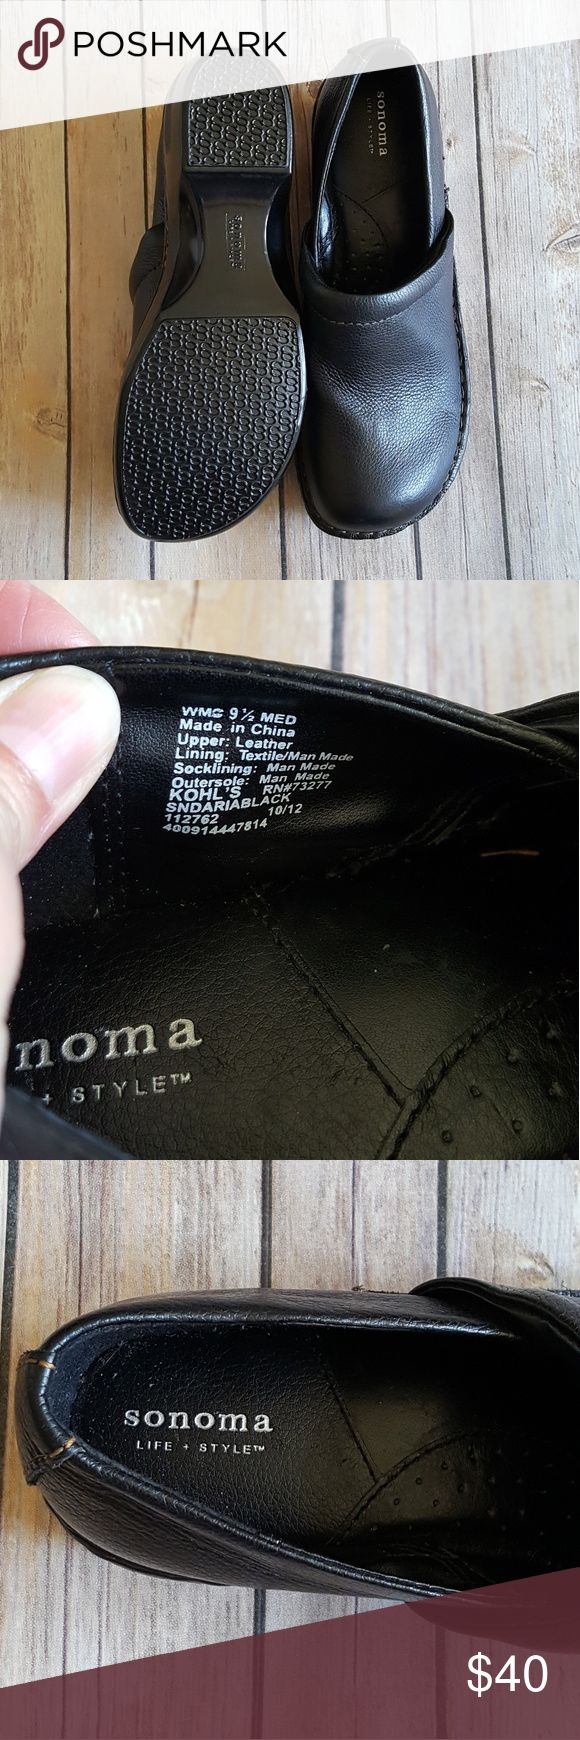 Sonoma Black Leather Shoes Brand new never been worn black leather shoes. Sonoma Shoes Mules & Clogs